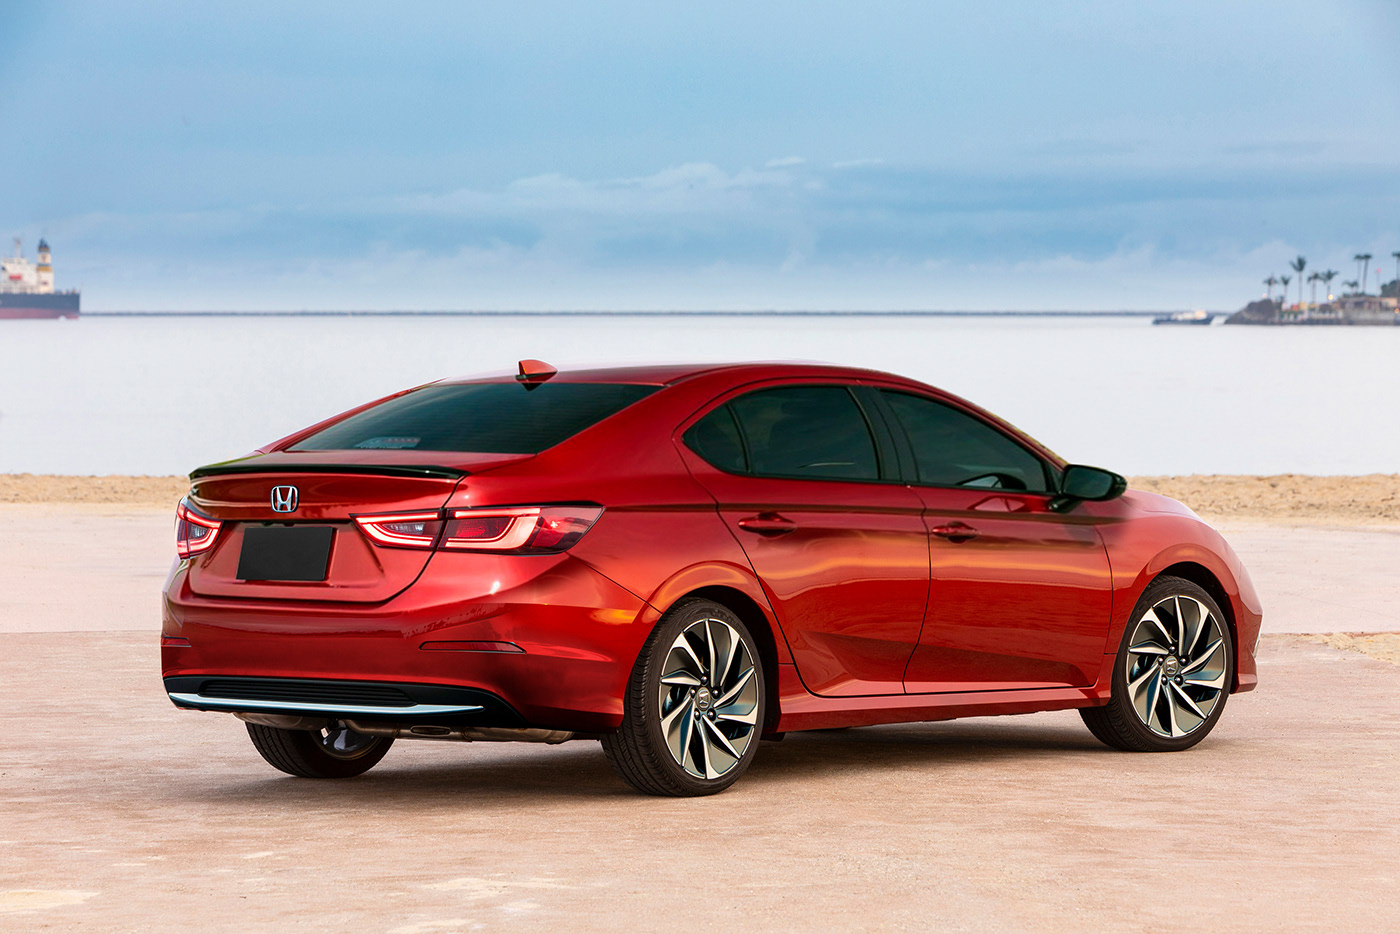 2022 Honda Civic Rendered With Insight Cues, Coupe Body ...